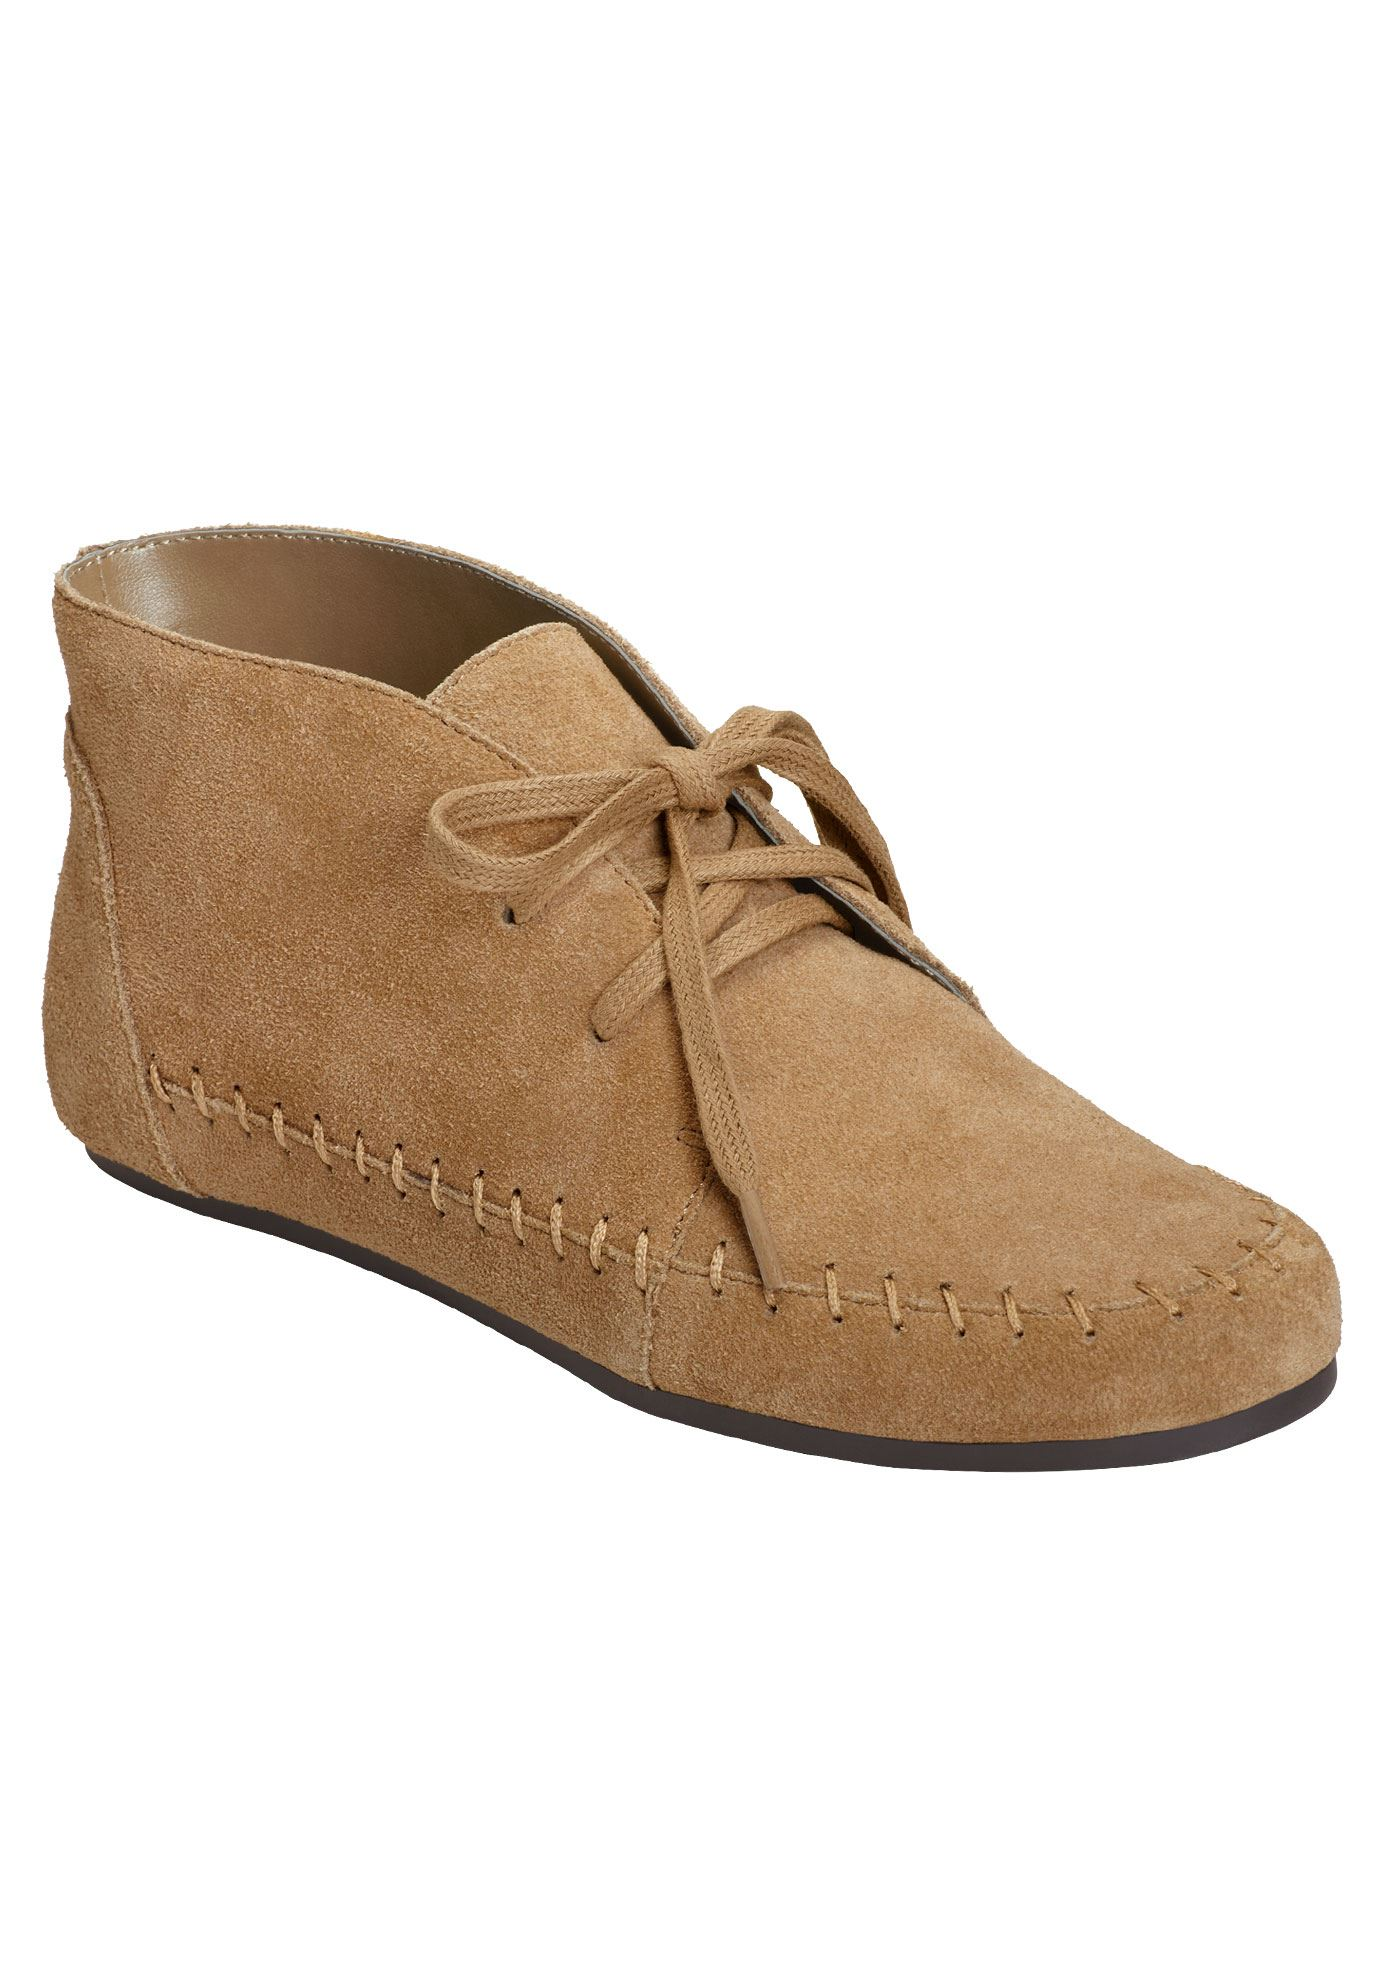 Driving Range Booties by Aerosoles®, TAN SUEDE, hi-res